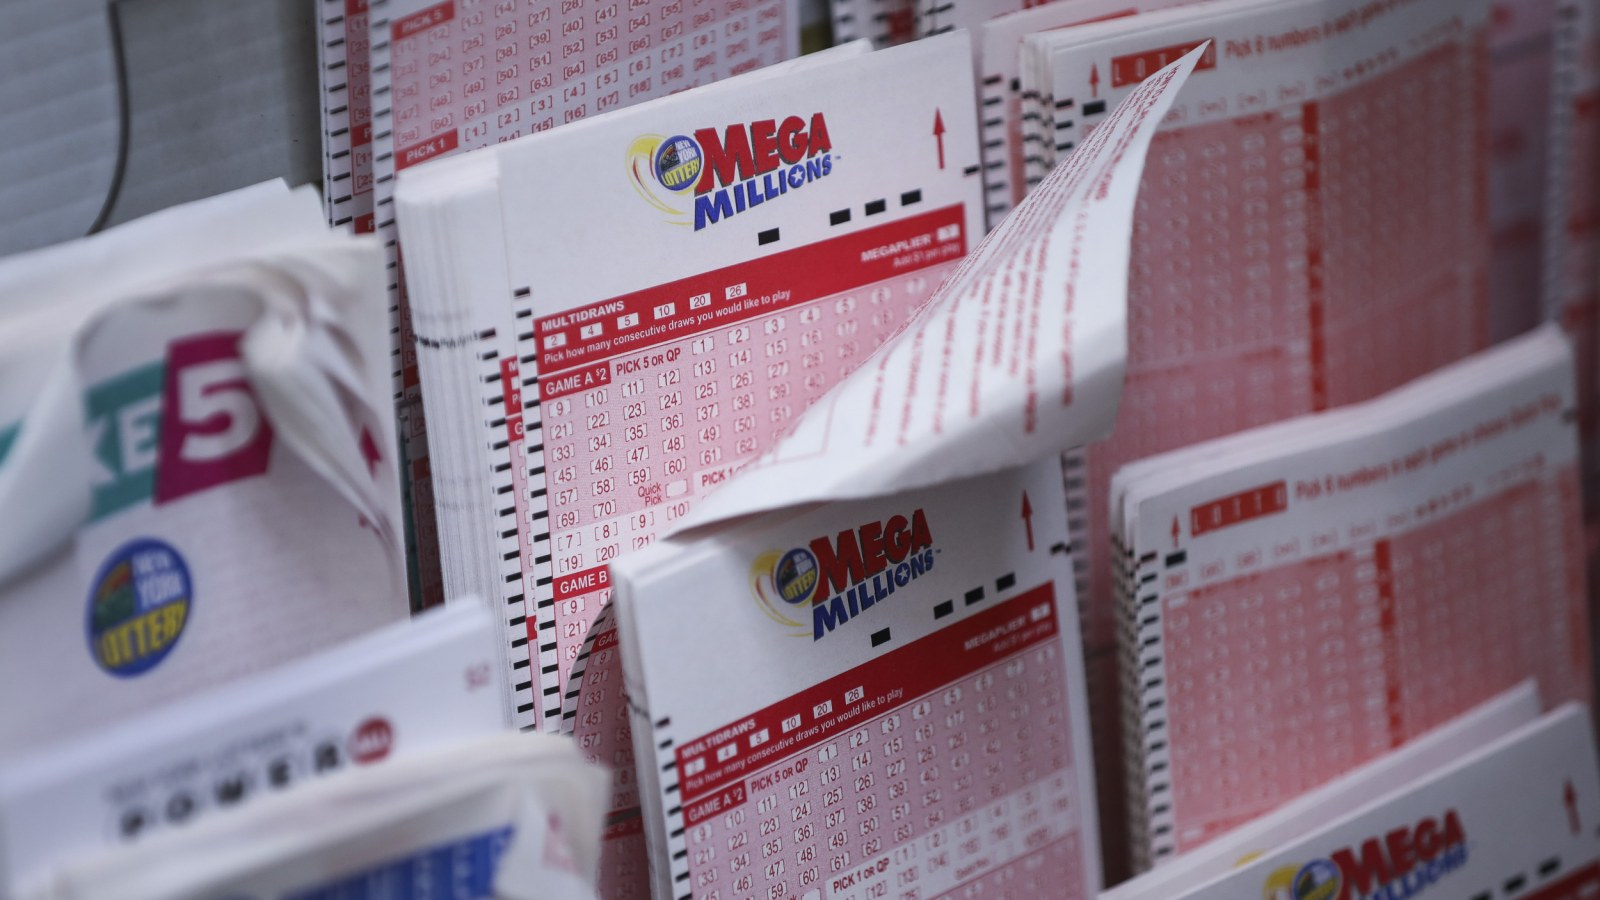 Mega Millions Results Numbers For 5 19 20 Did Anyone Win The 274 Million Jackpot Prize Last Night